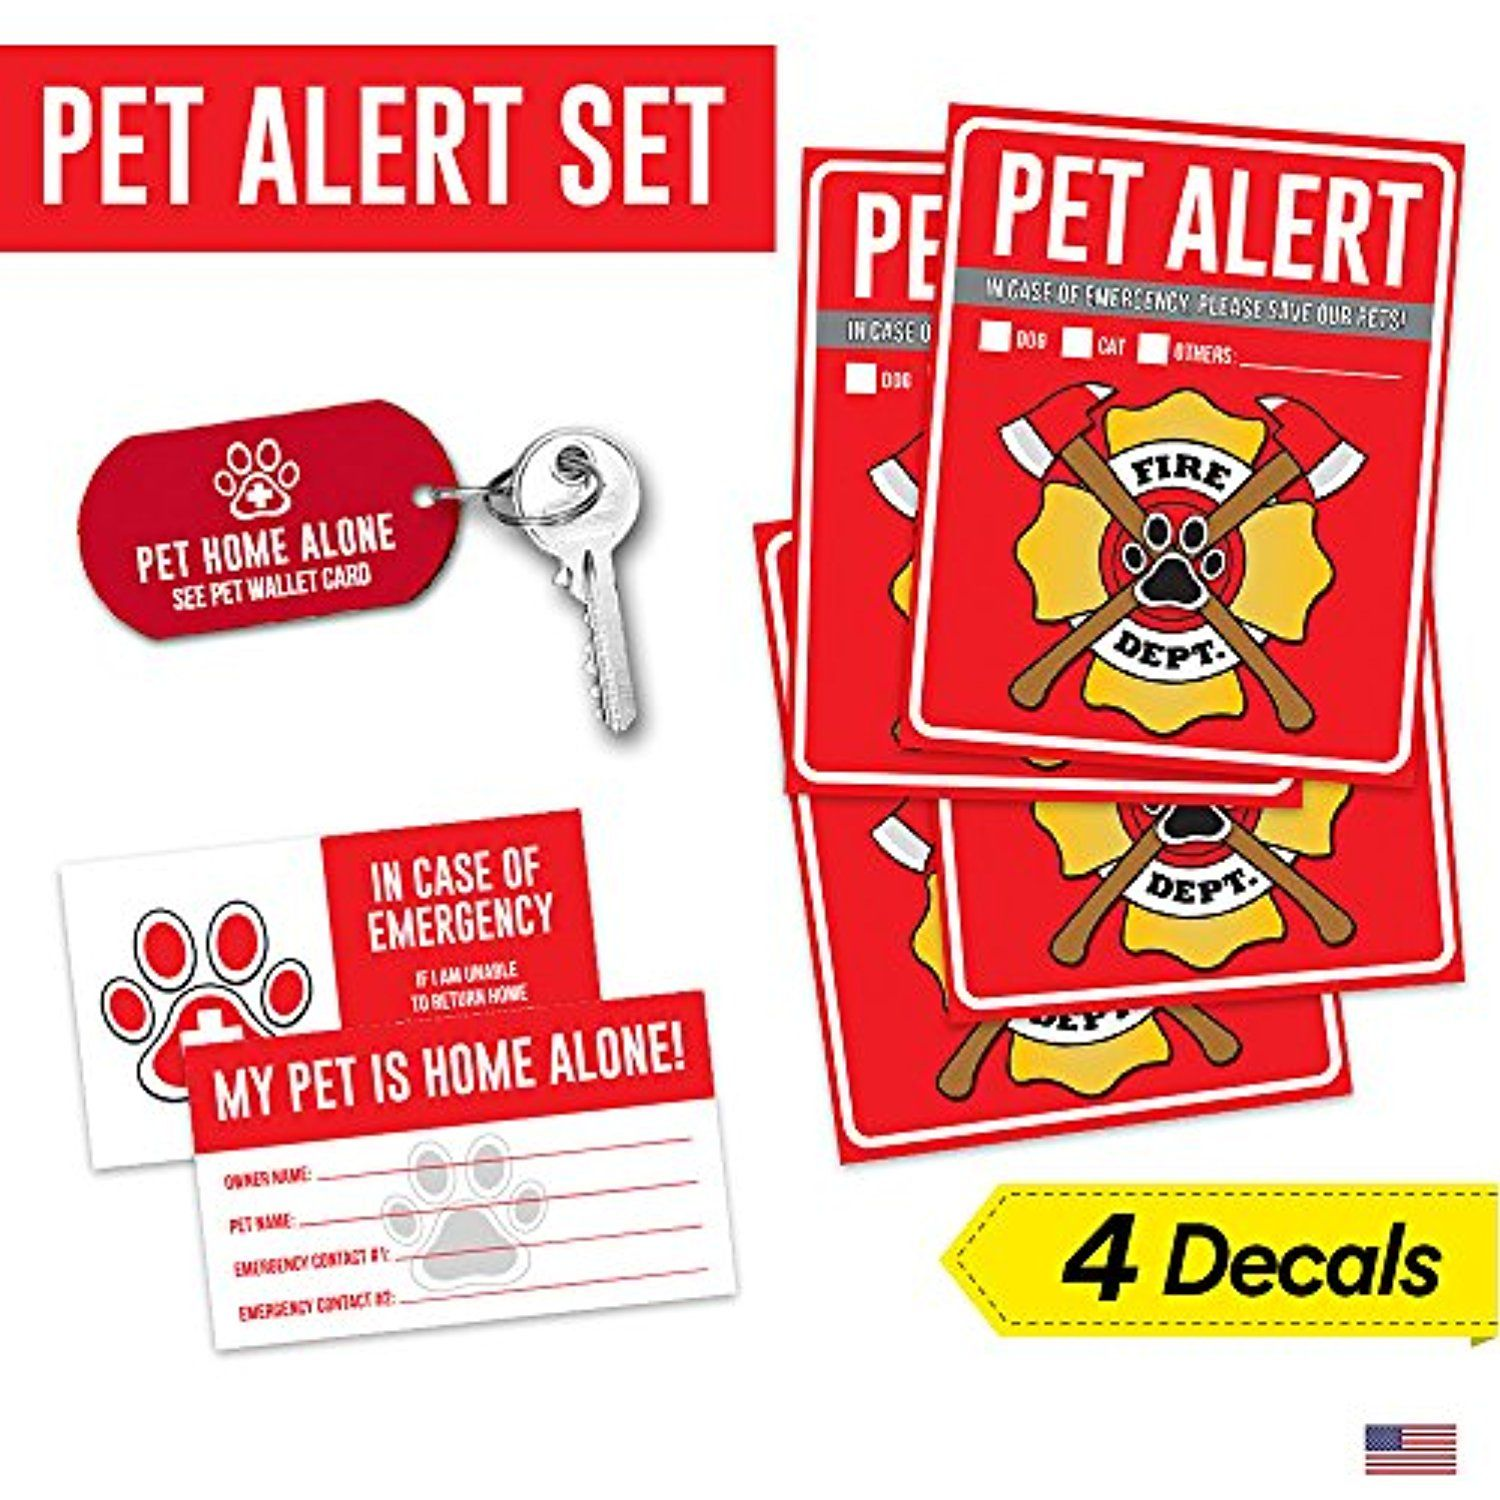 Pet Alert Safety Fire Rescue Sticker Save Our Pets